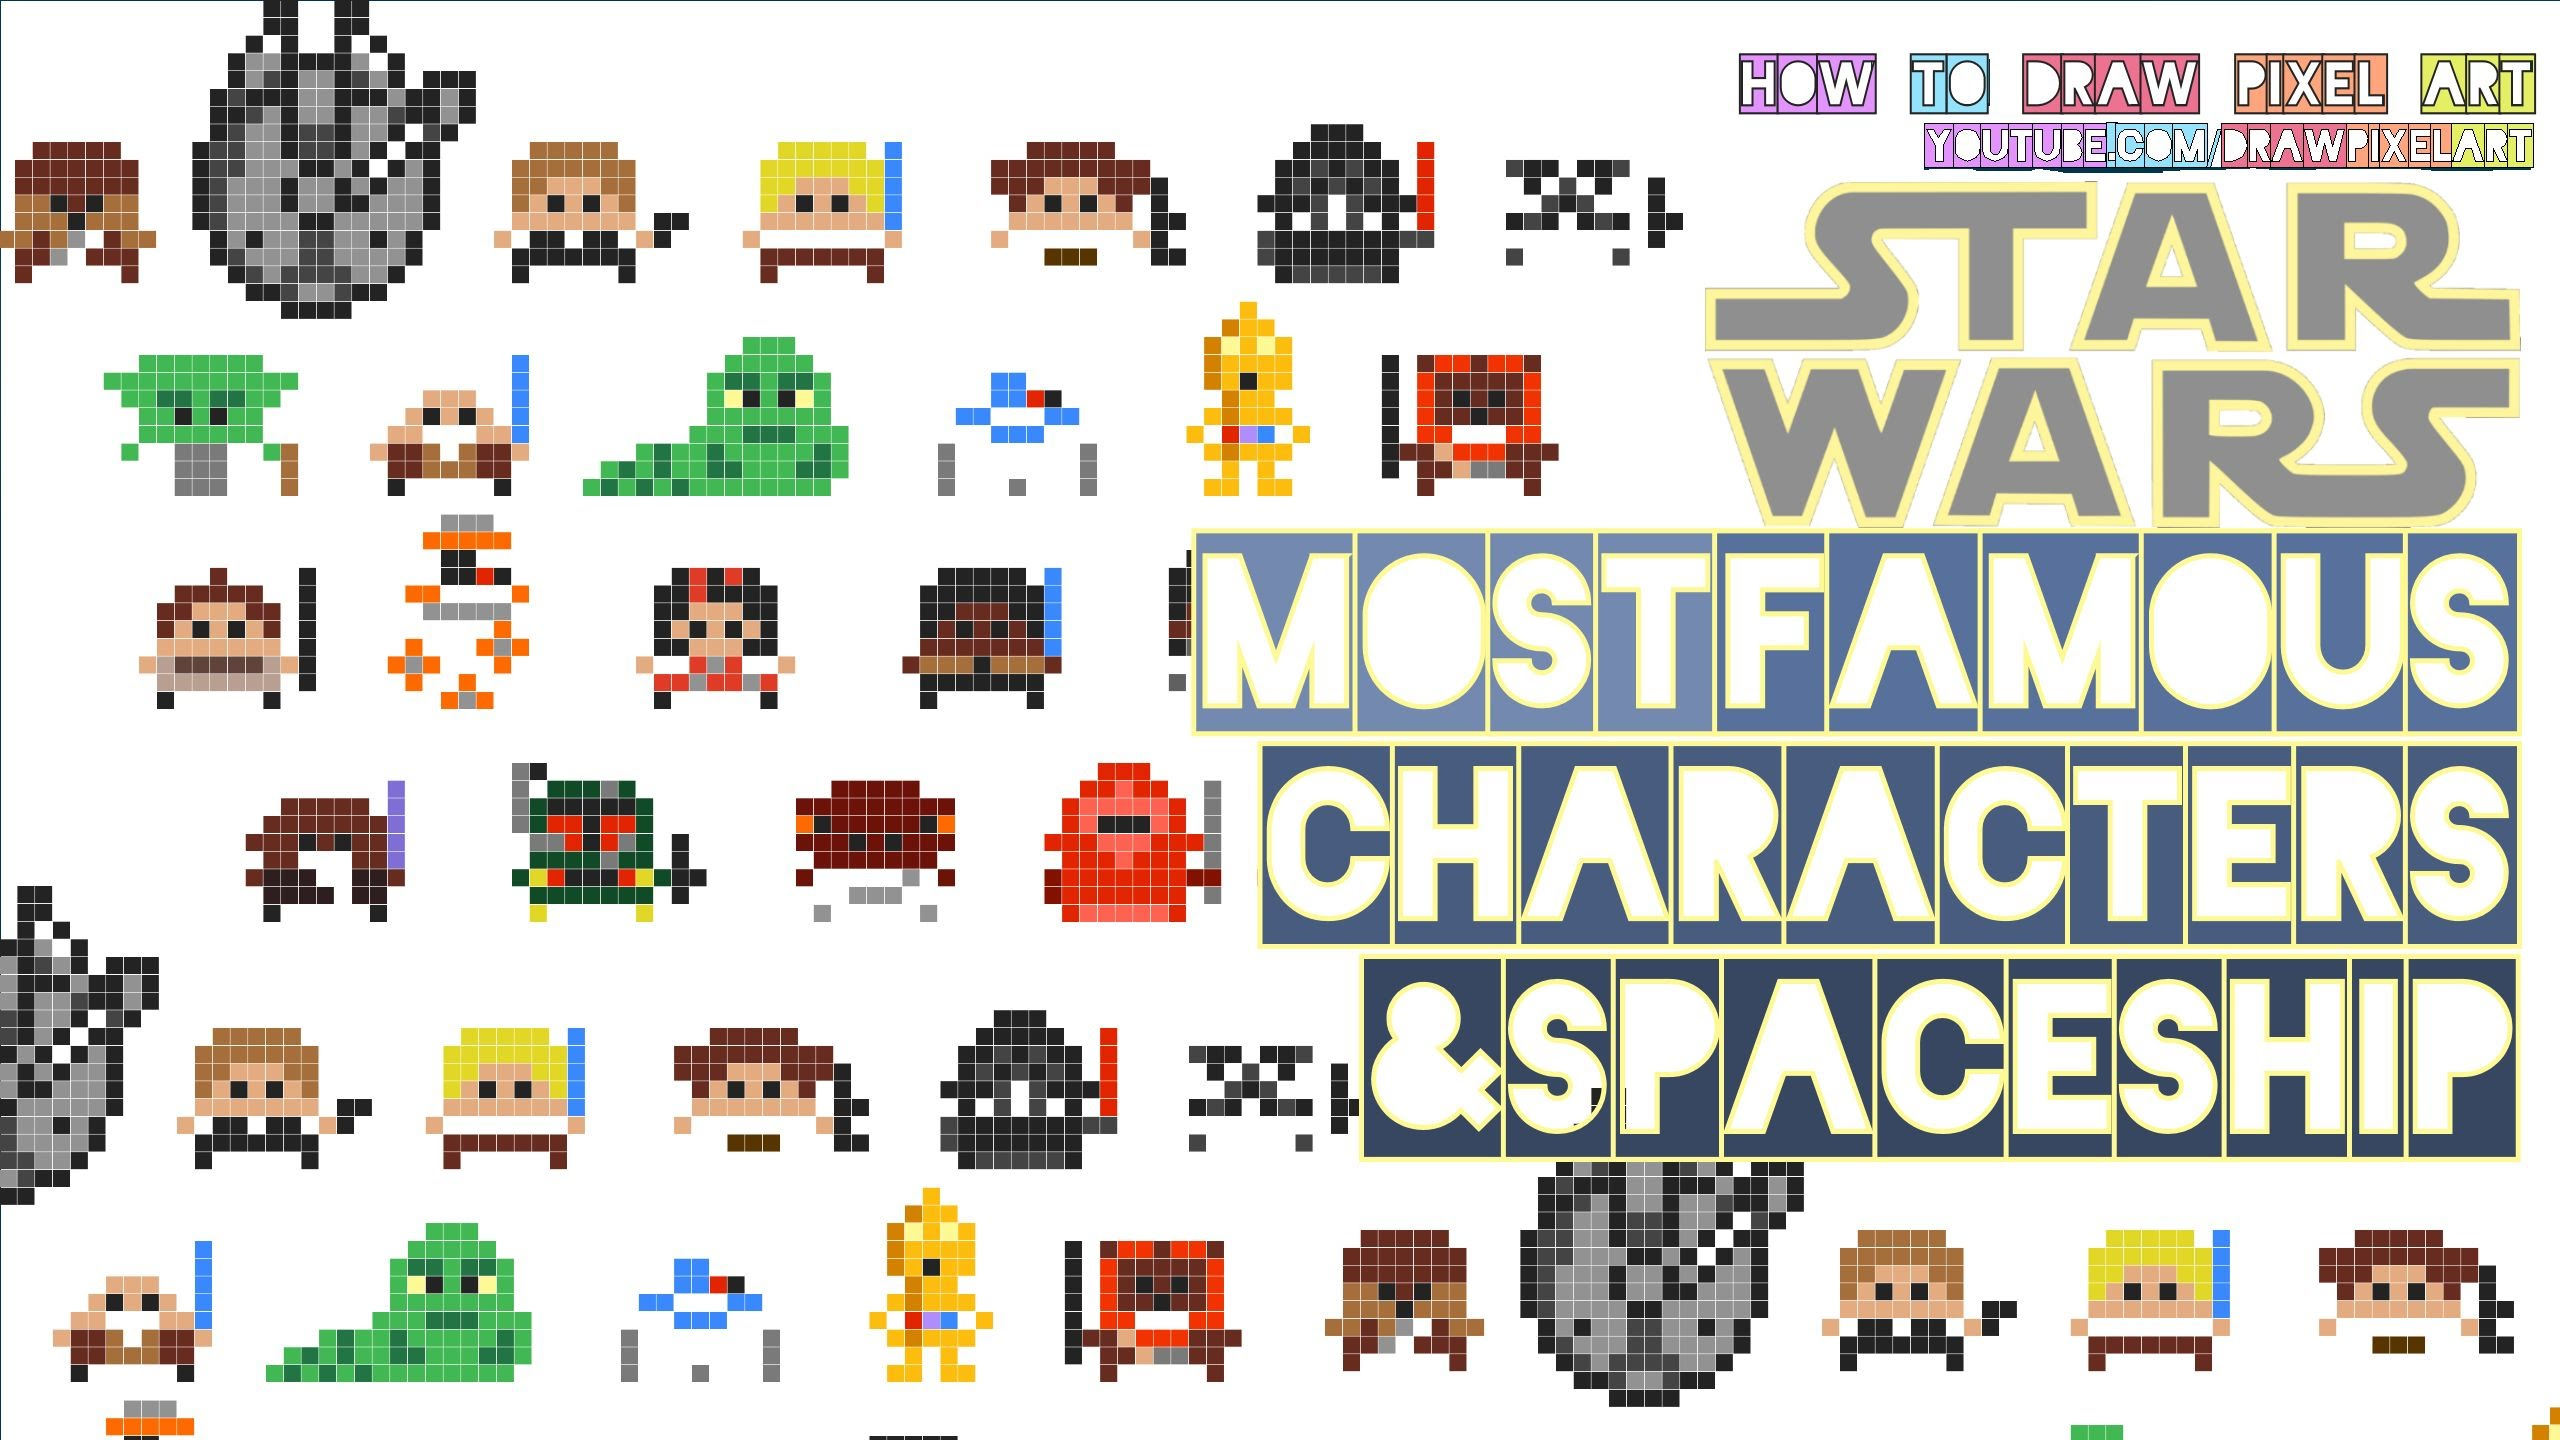 2560x1440 How To Draw Star Wars All Episodes Famous Characters Movie Easy